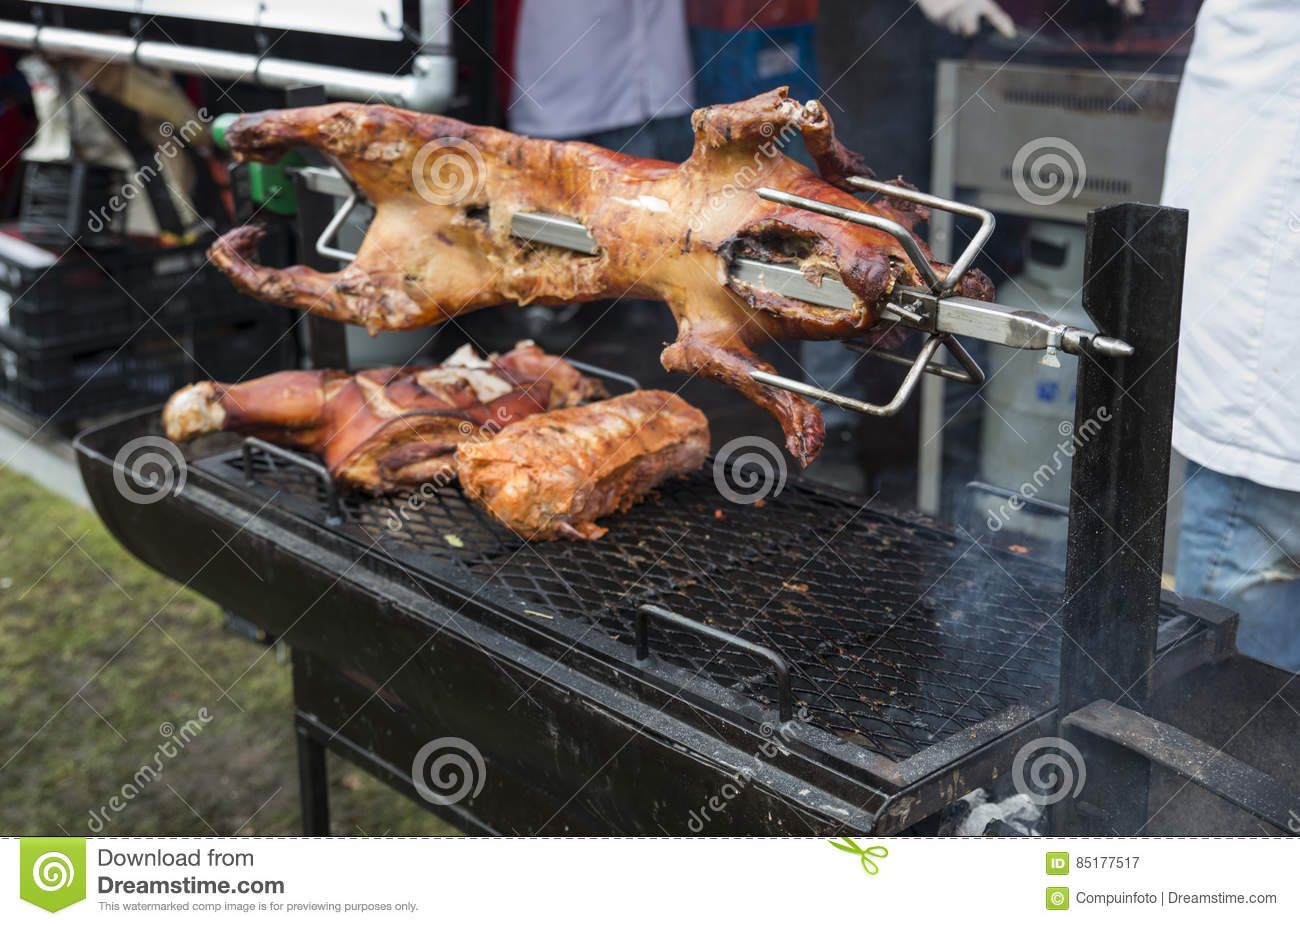 Barbecue Restaurant Rotterdam.Pig On The Bbq In Rotterdam Stock Image Image Of Cooking Pork